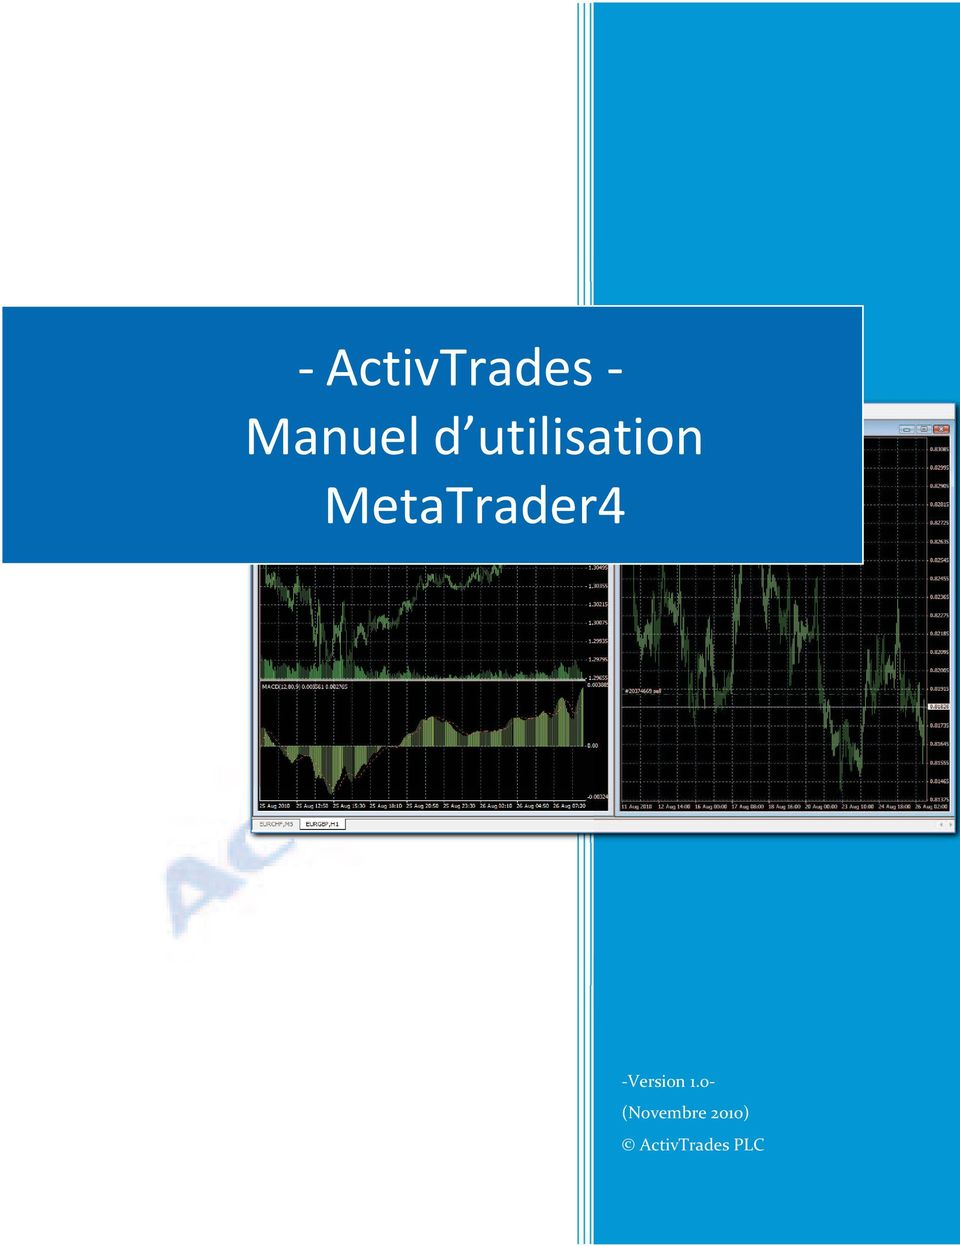 MetaTrader4 -Version 1.